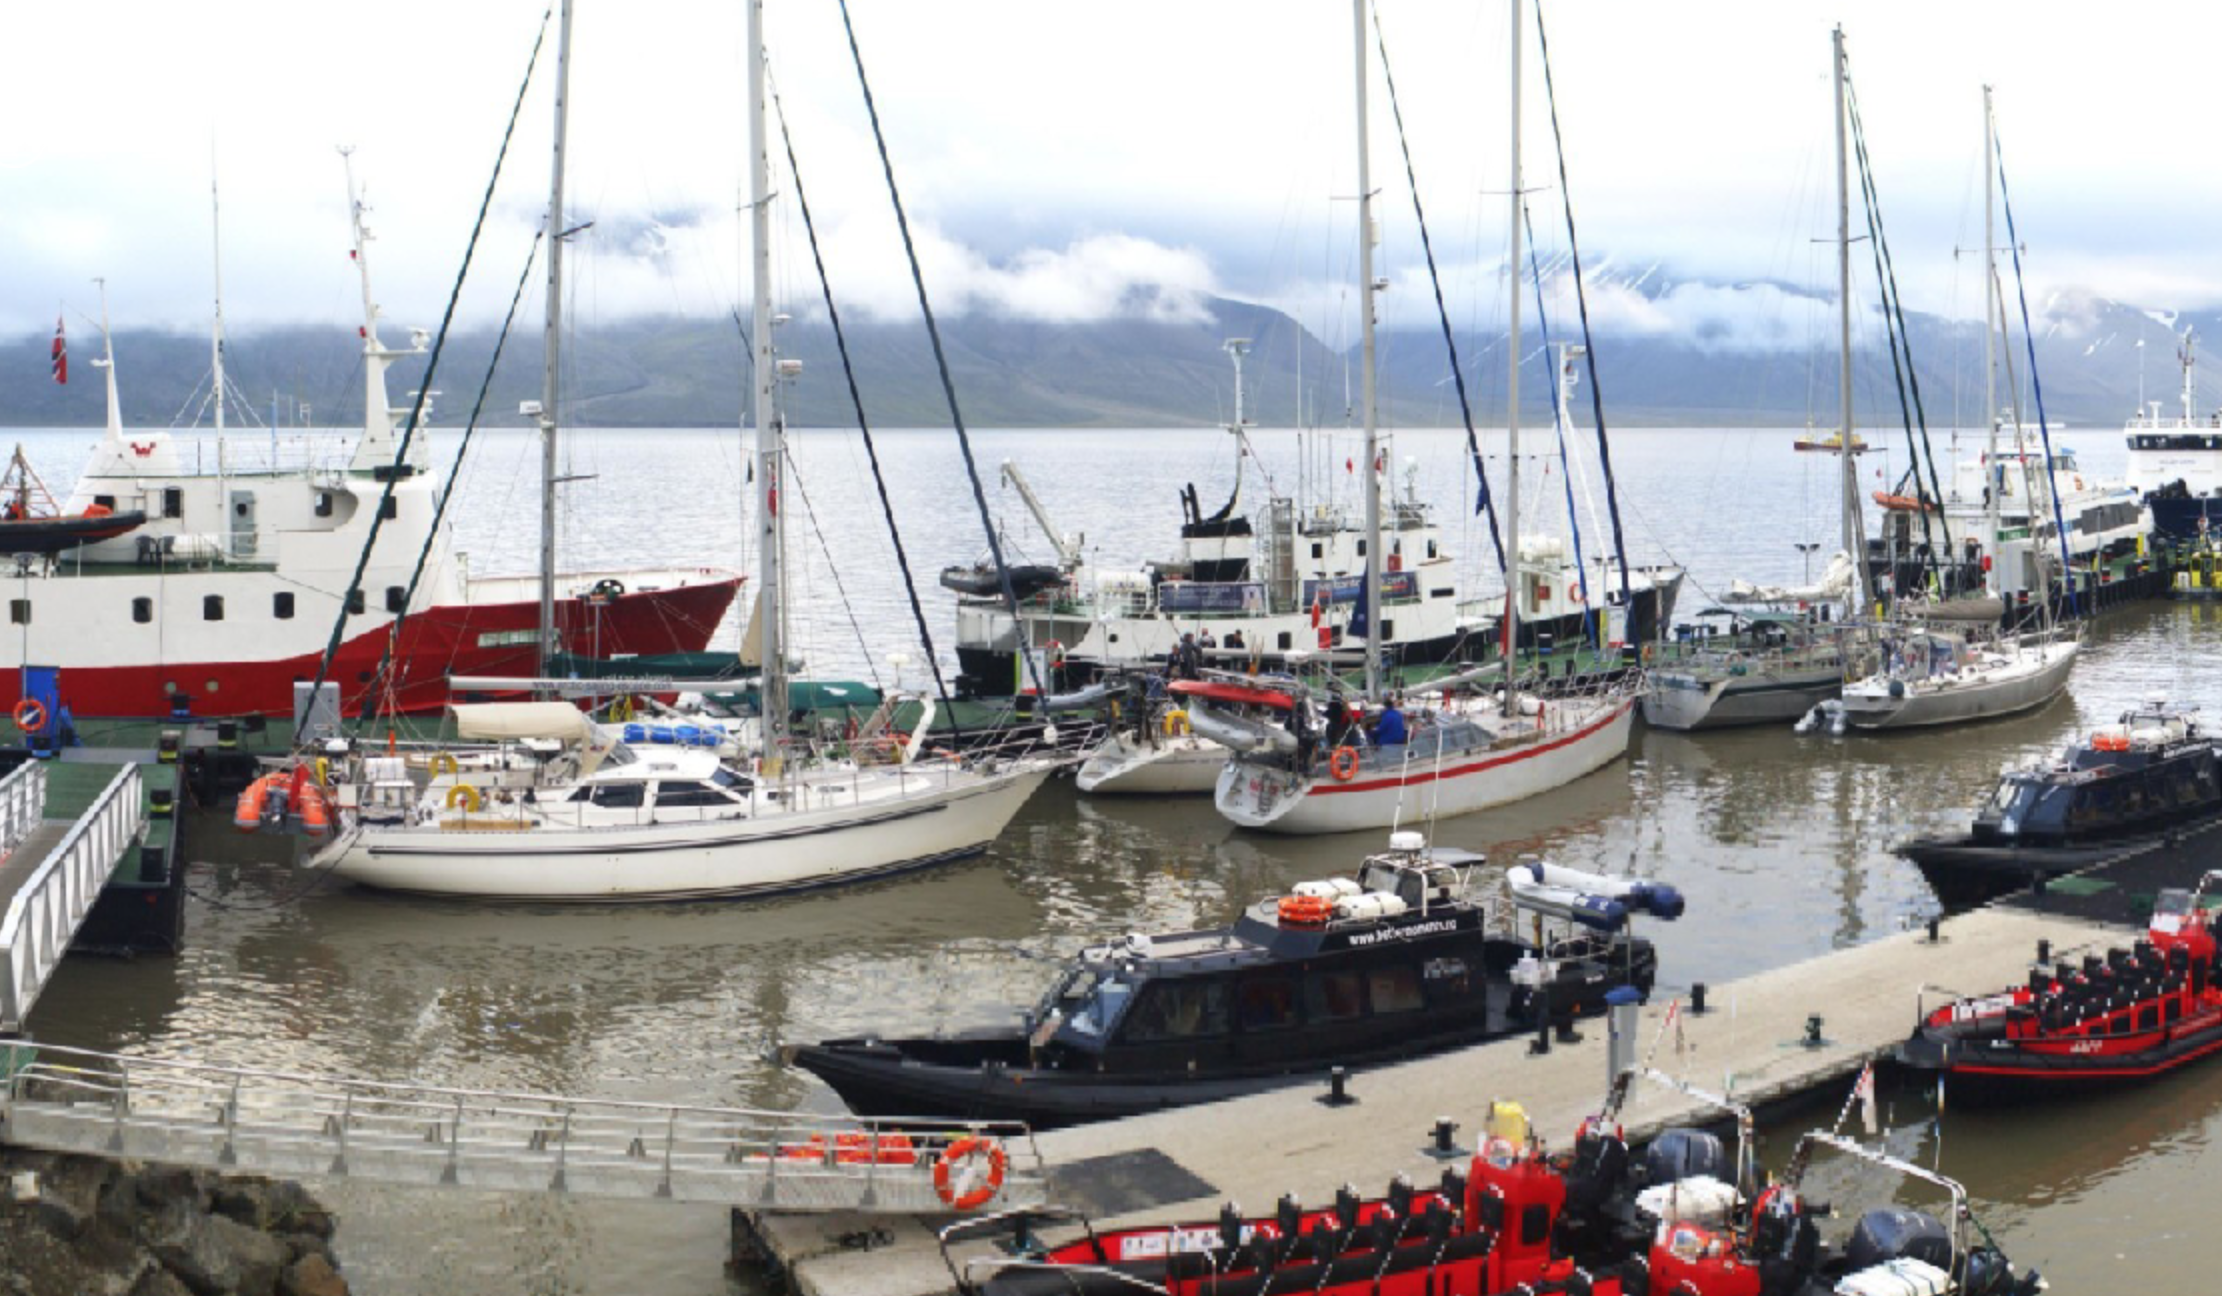 A busy season in the Port of Longyearbyen. Photo: Port of Longyearbyen